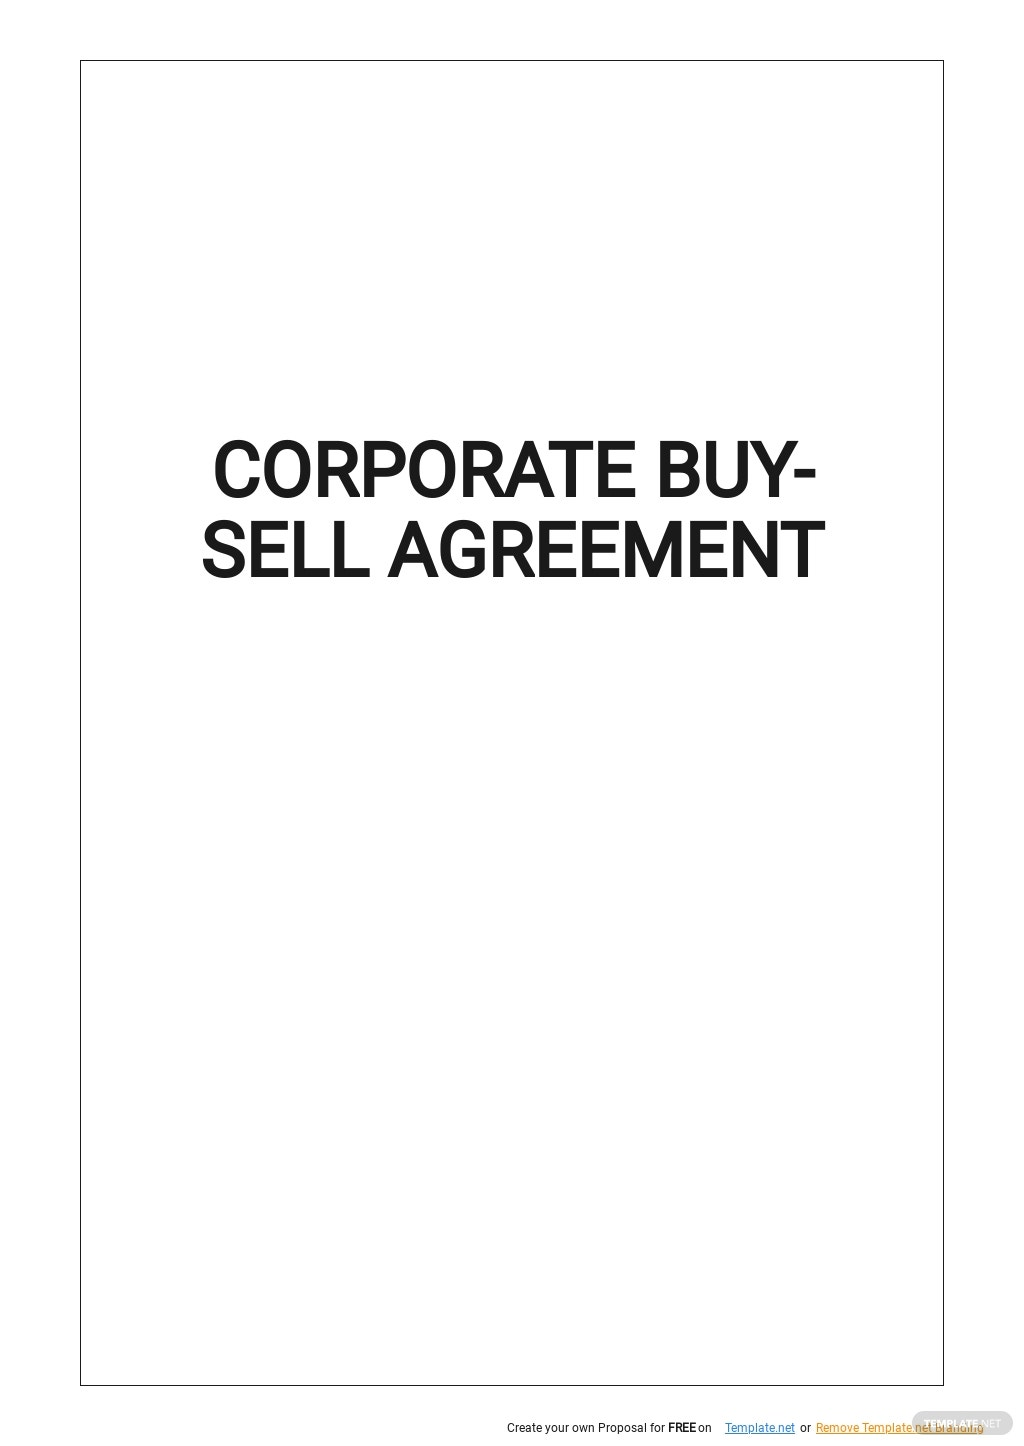 Corporate Buy Sell Agreement Template.jpe